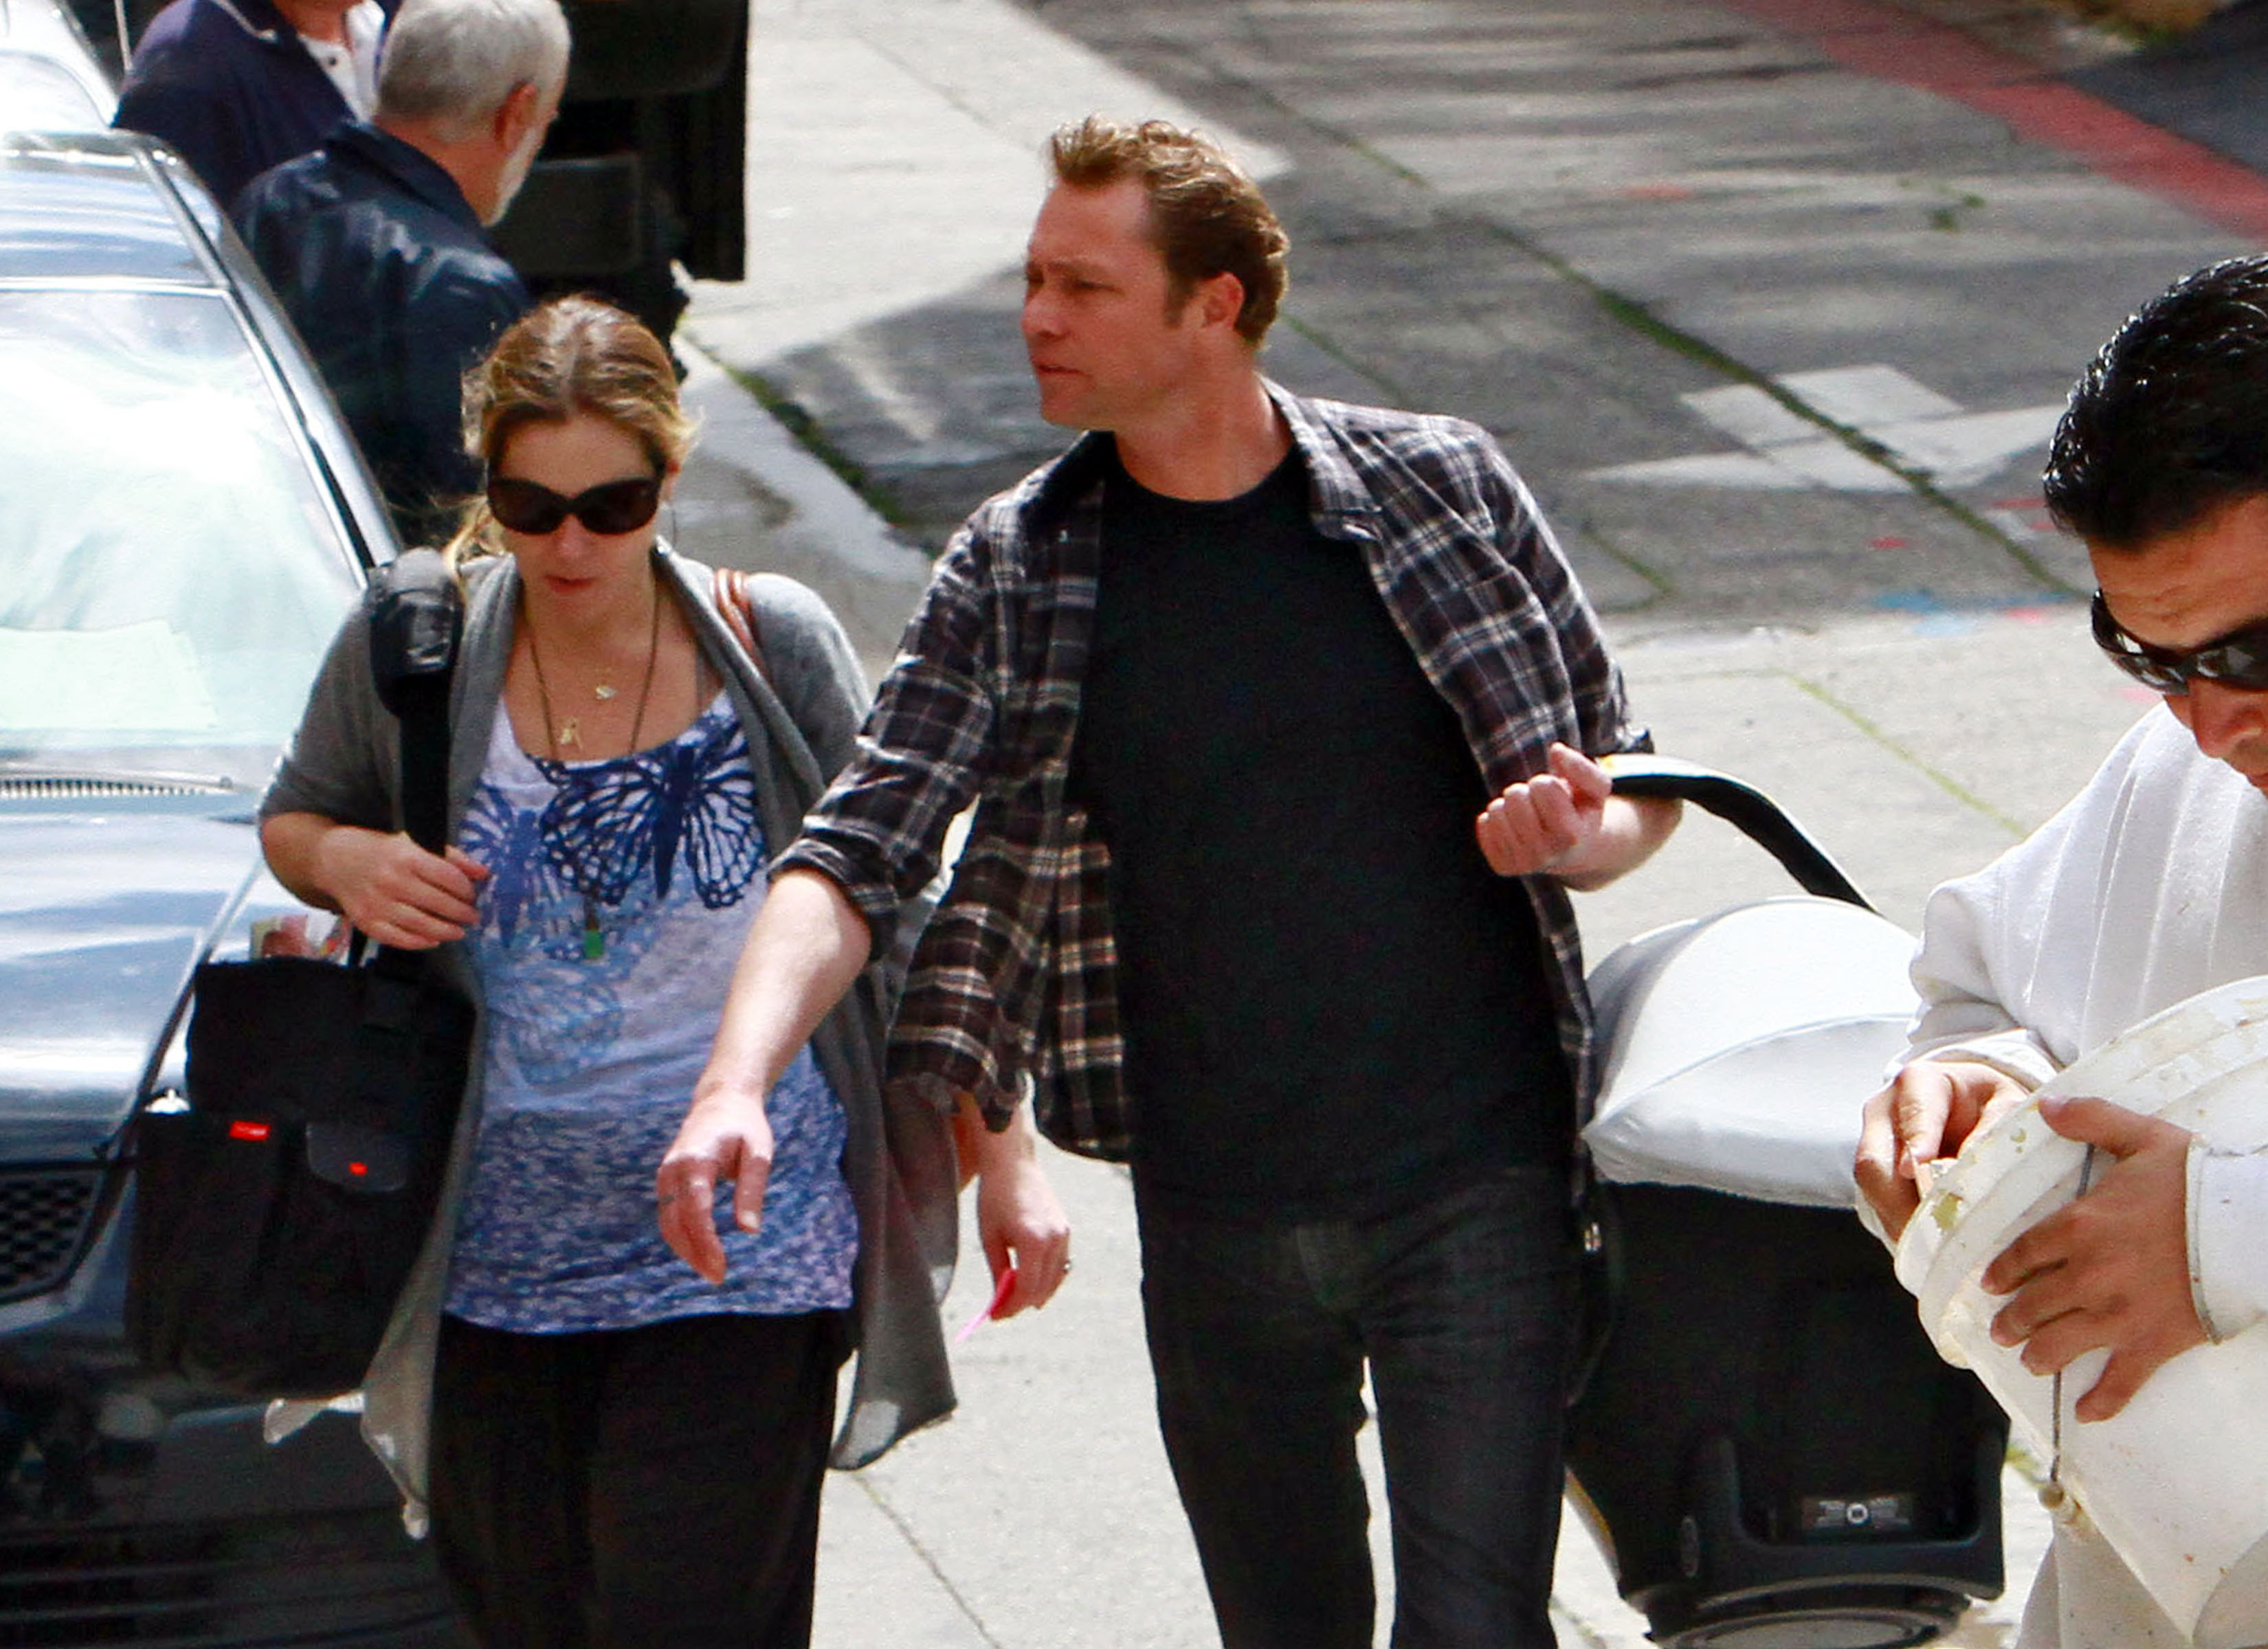 Out & about: Christina Applegate and family! - Today's Parent